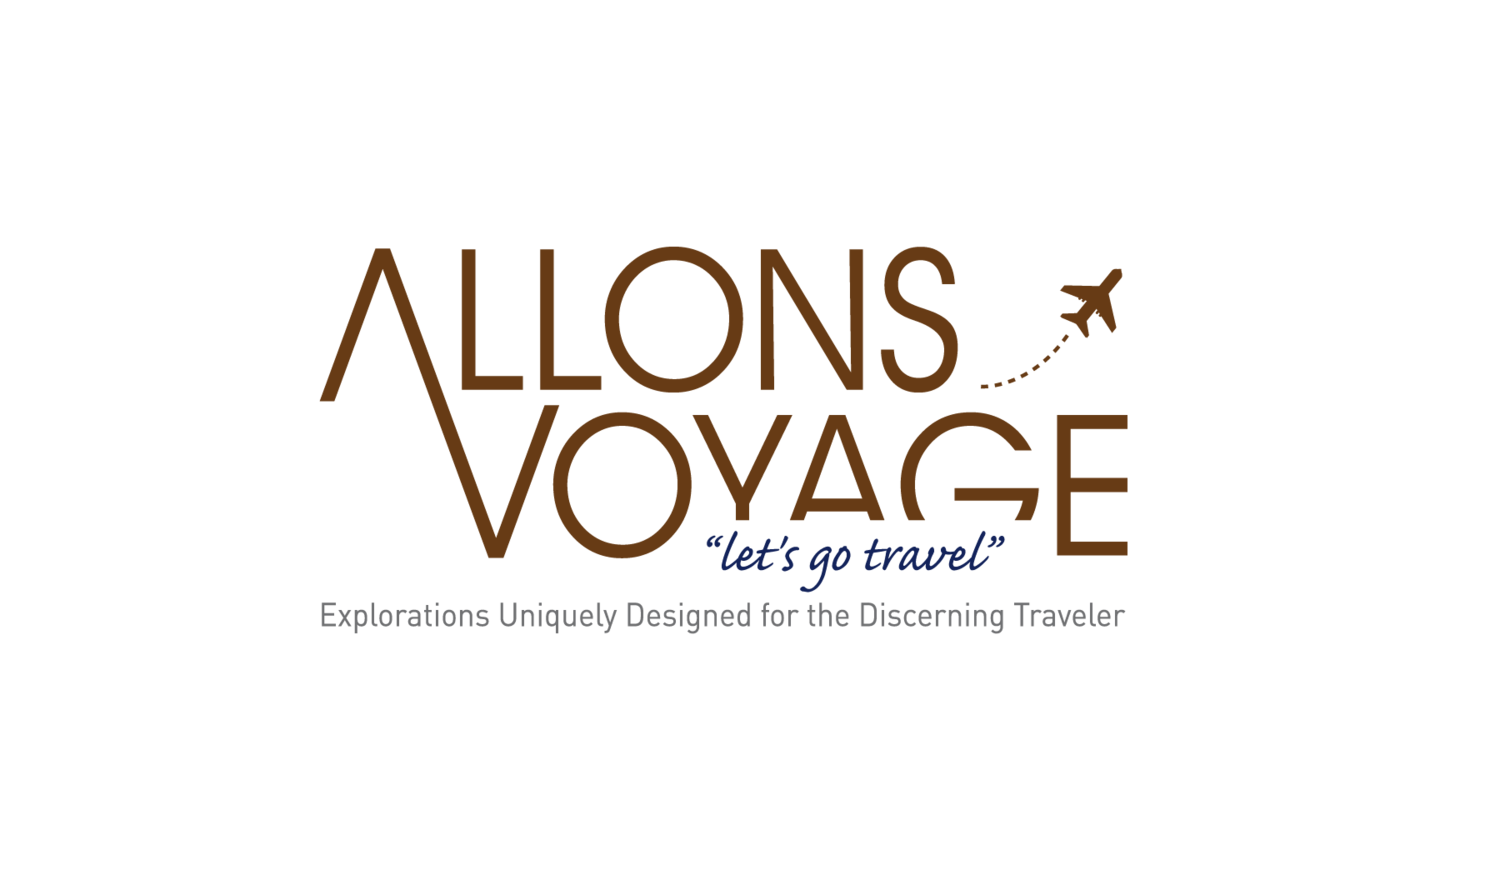 ALLONS VOYAGE